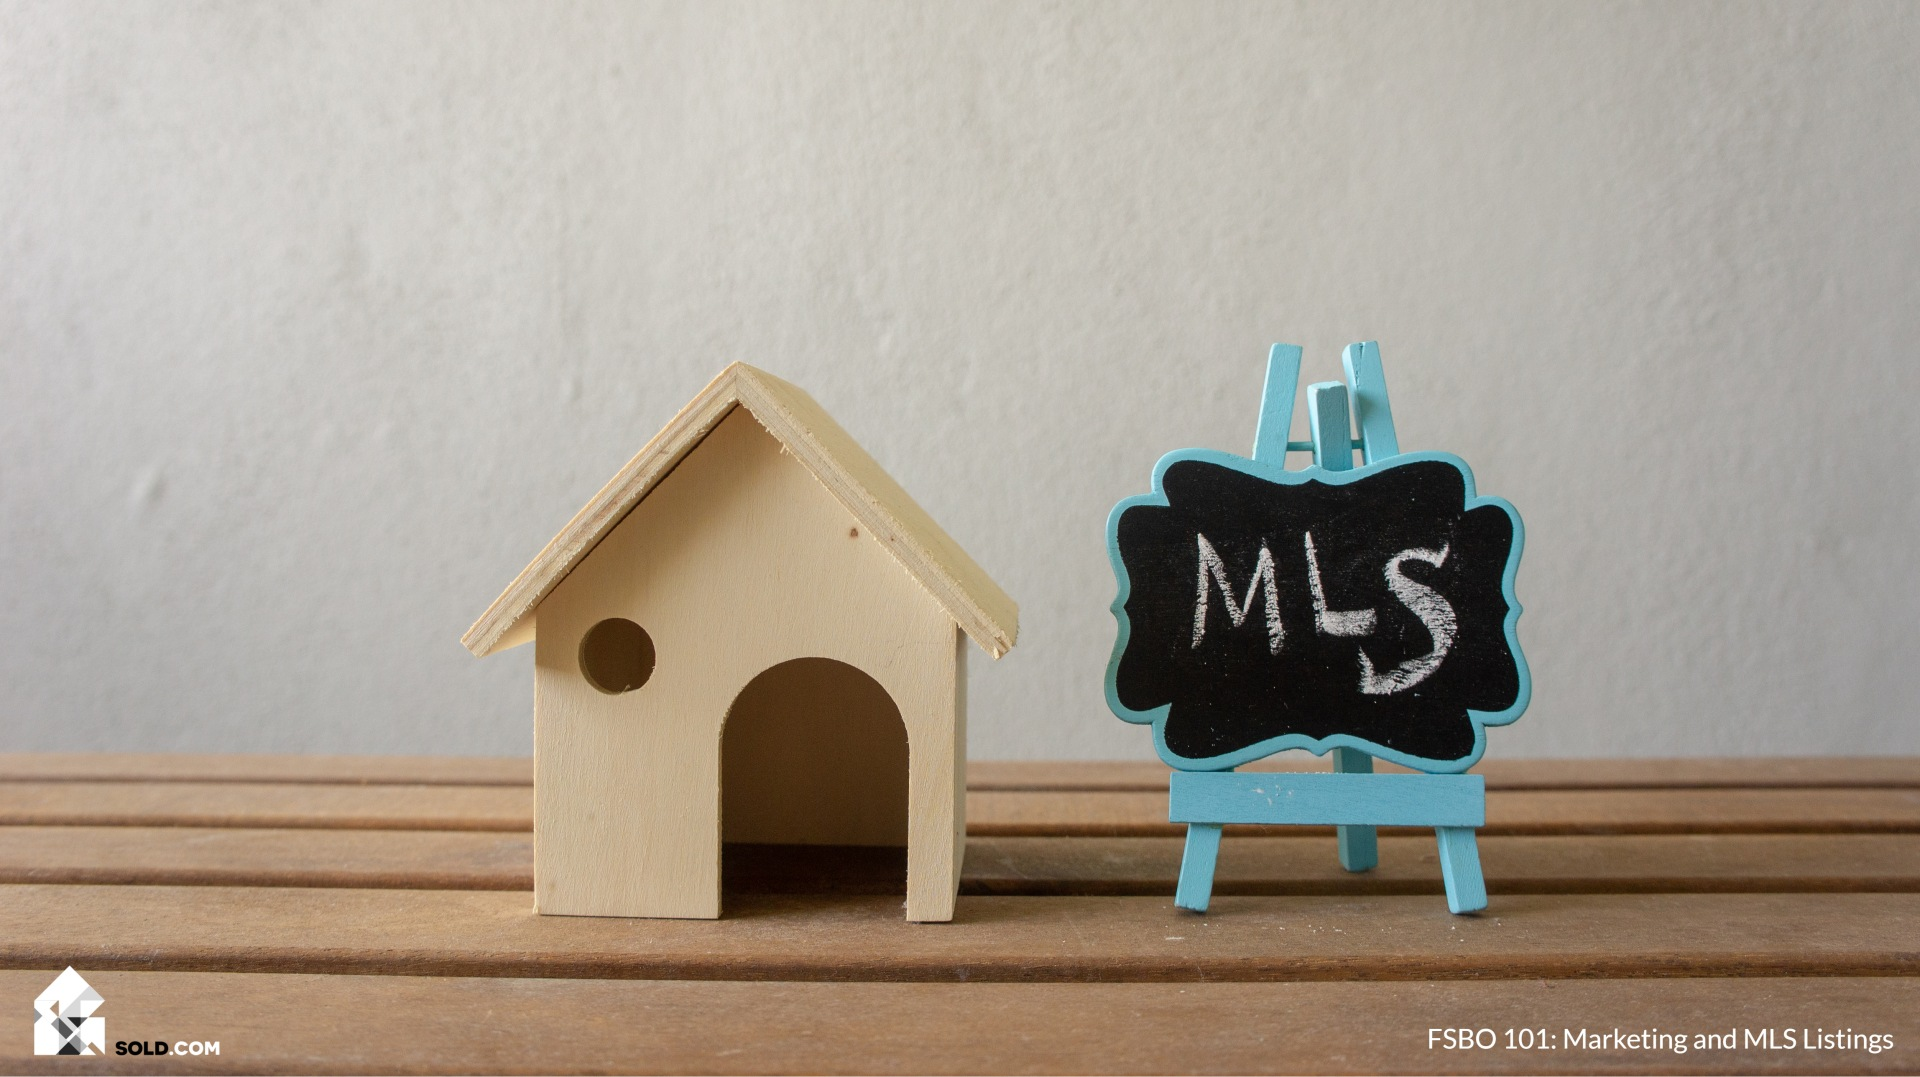 FSBO 101: Marketing and MLS Listings